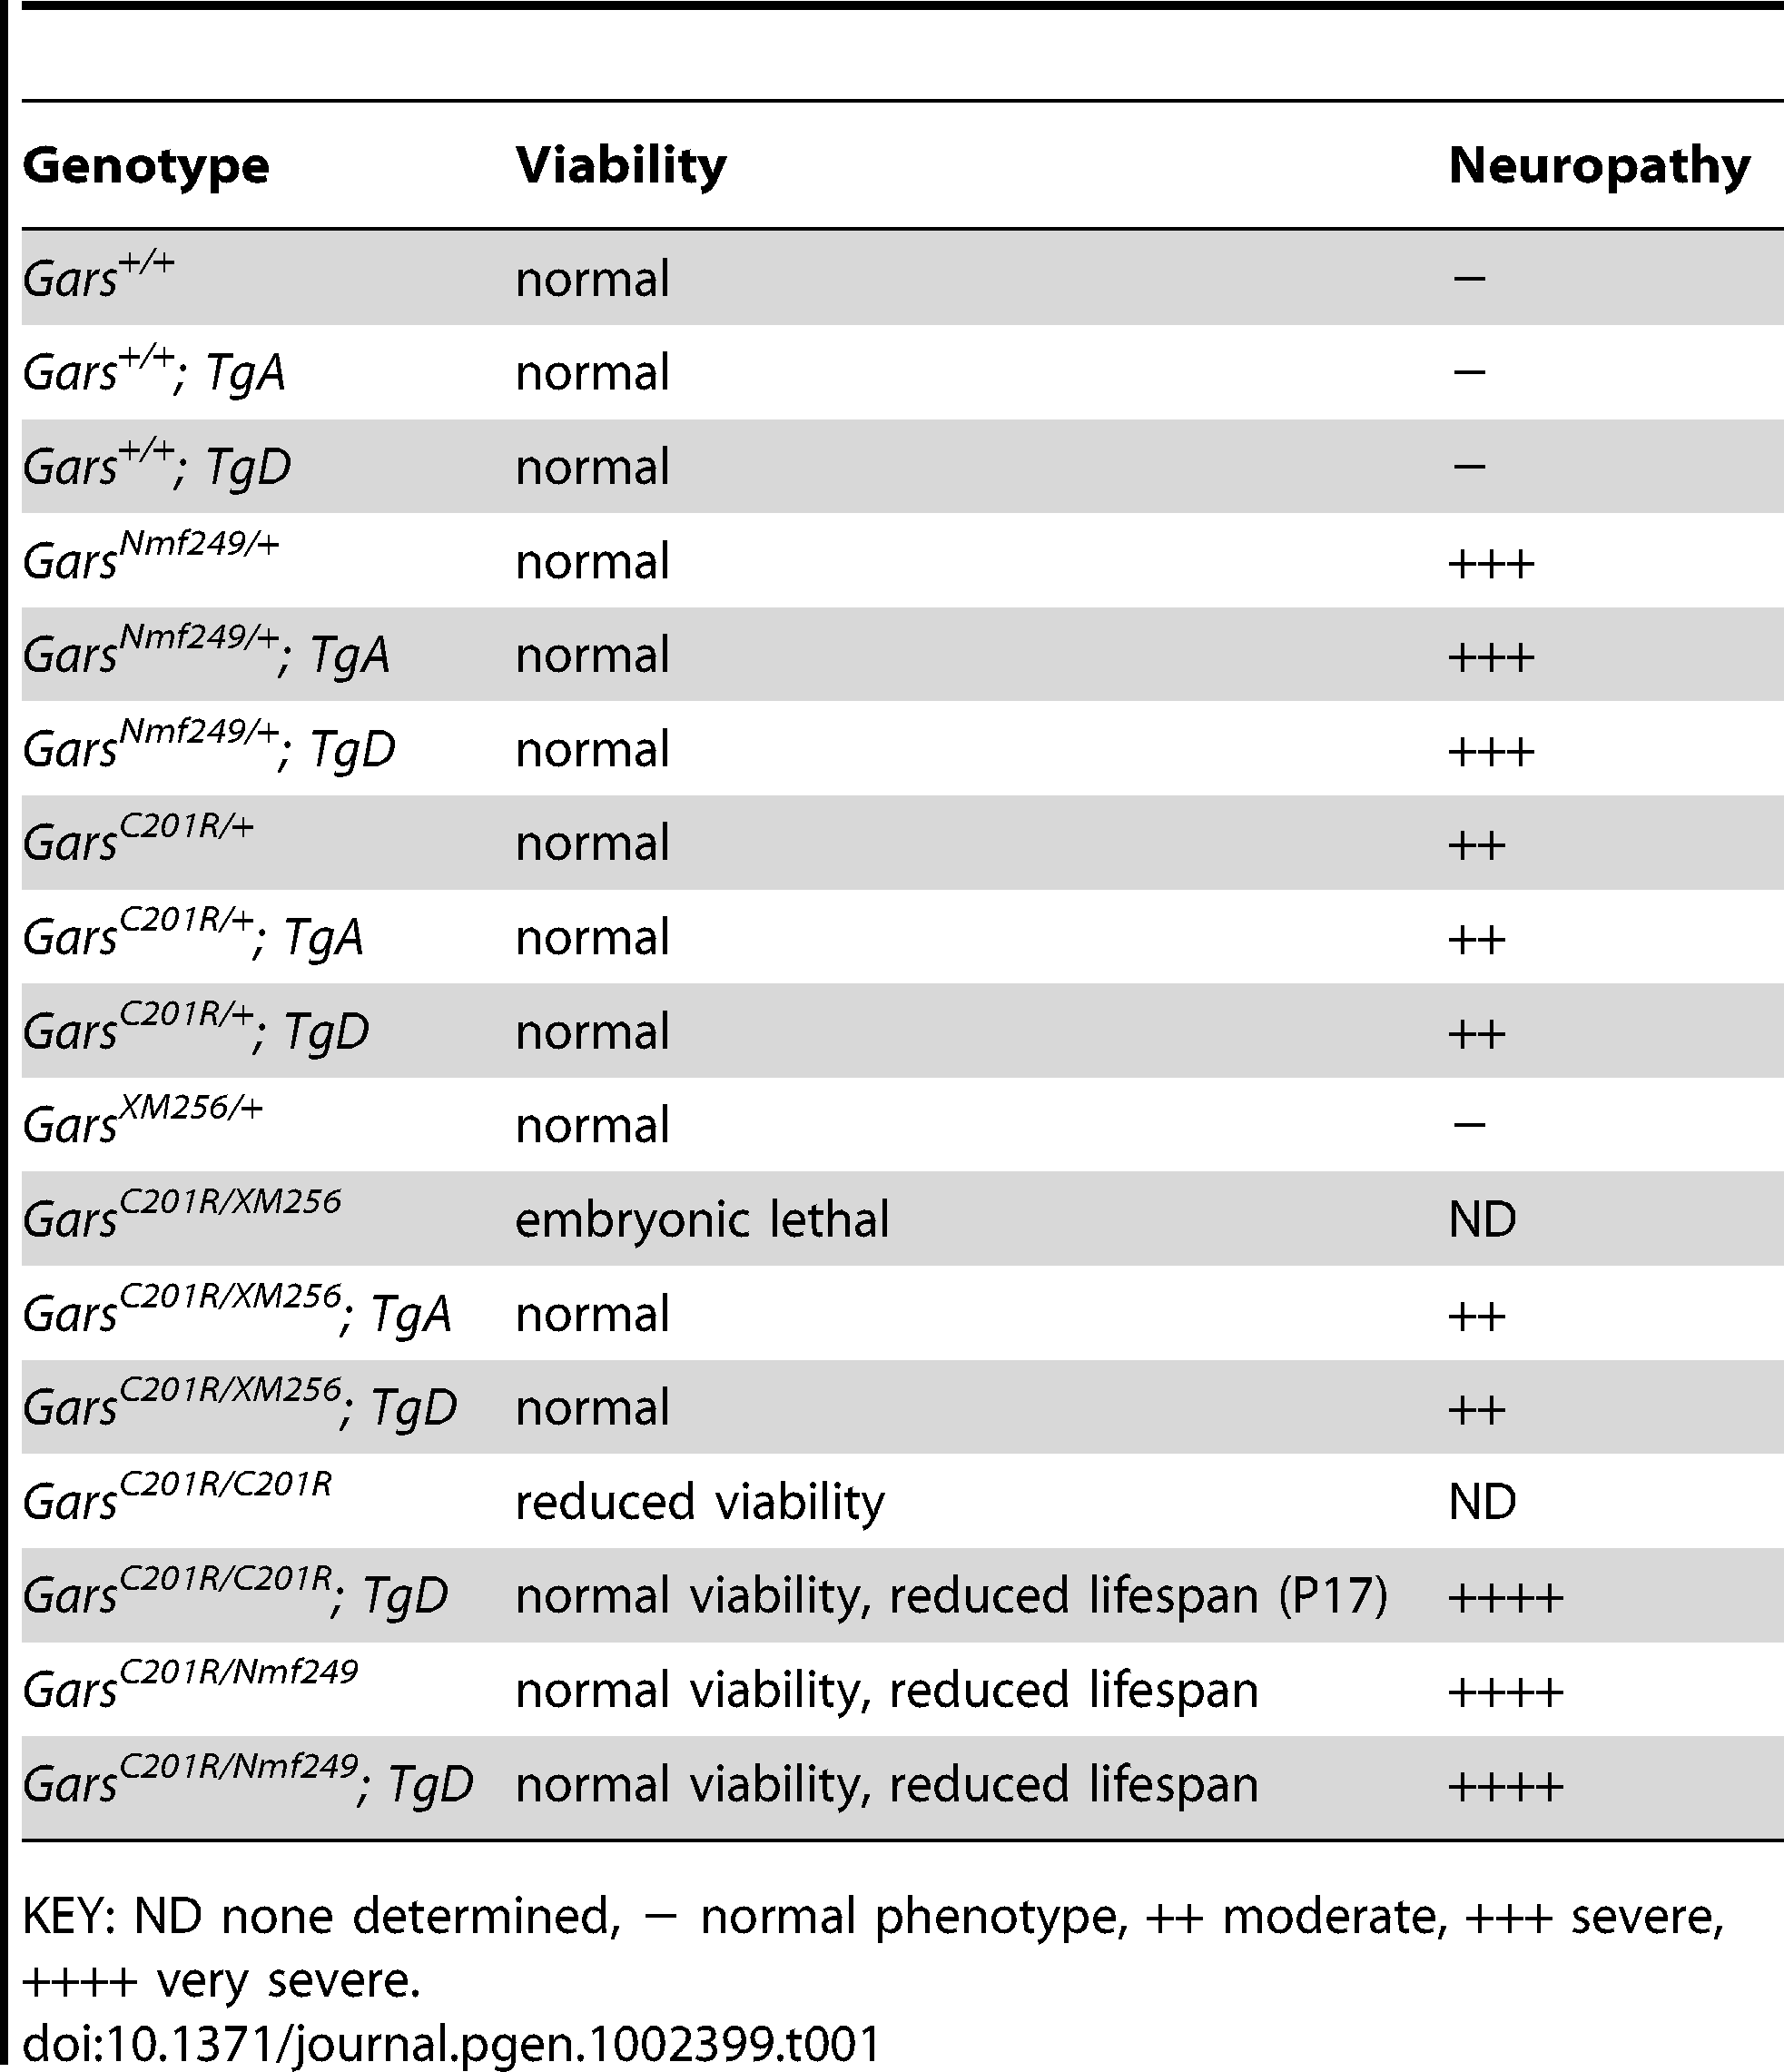 A summary of the genotypes of mice used in these studies indicating the viability and neuropathy phenotypes associated with each genotype.